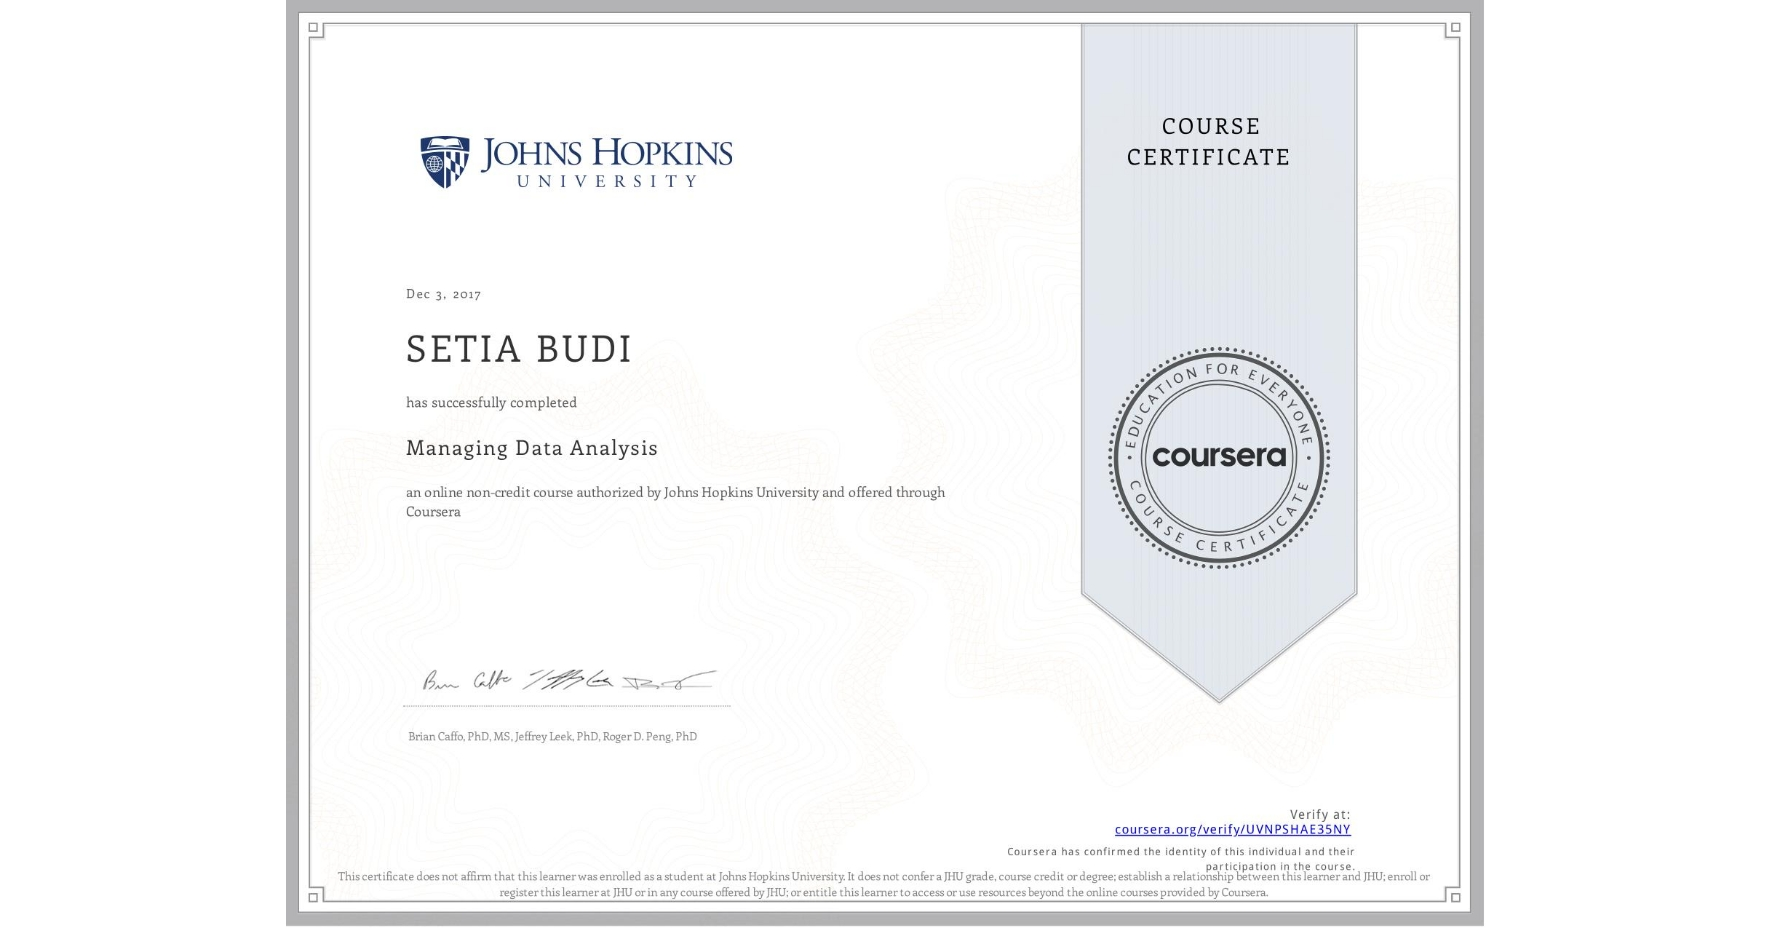 View certificate for Setia Budi, Managing Data Analysis, an online non-credit course authorized by Johns Hopkins University and offered through Coursera